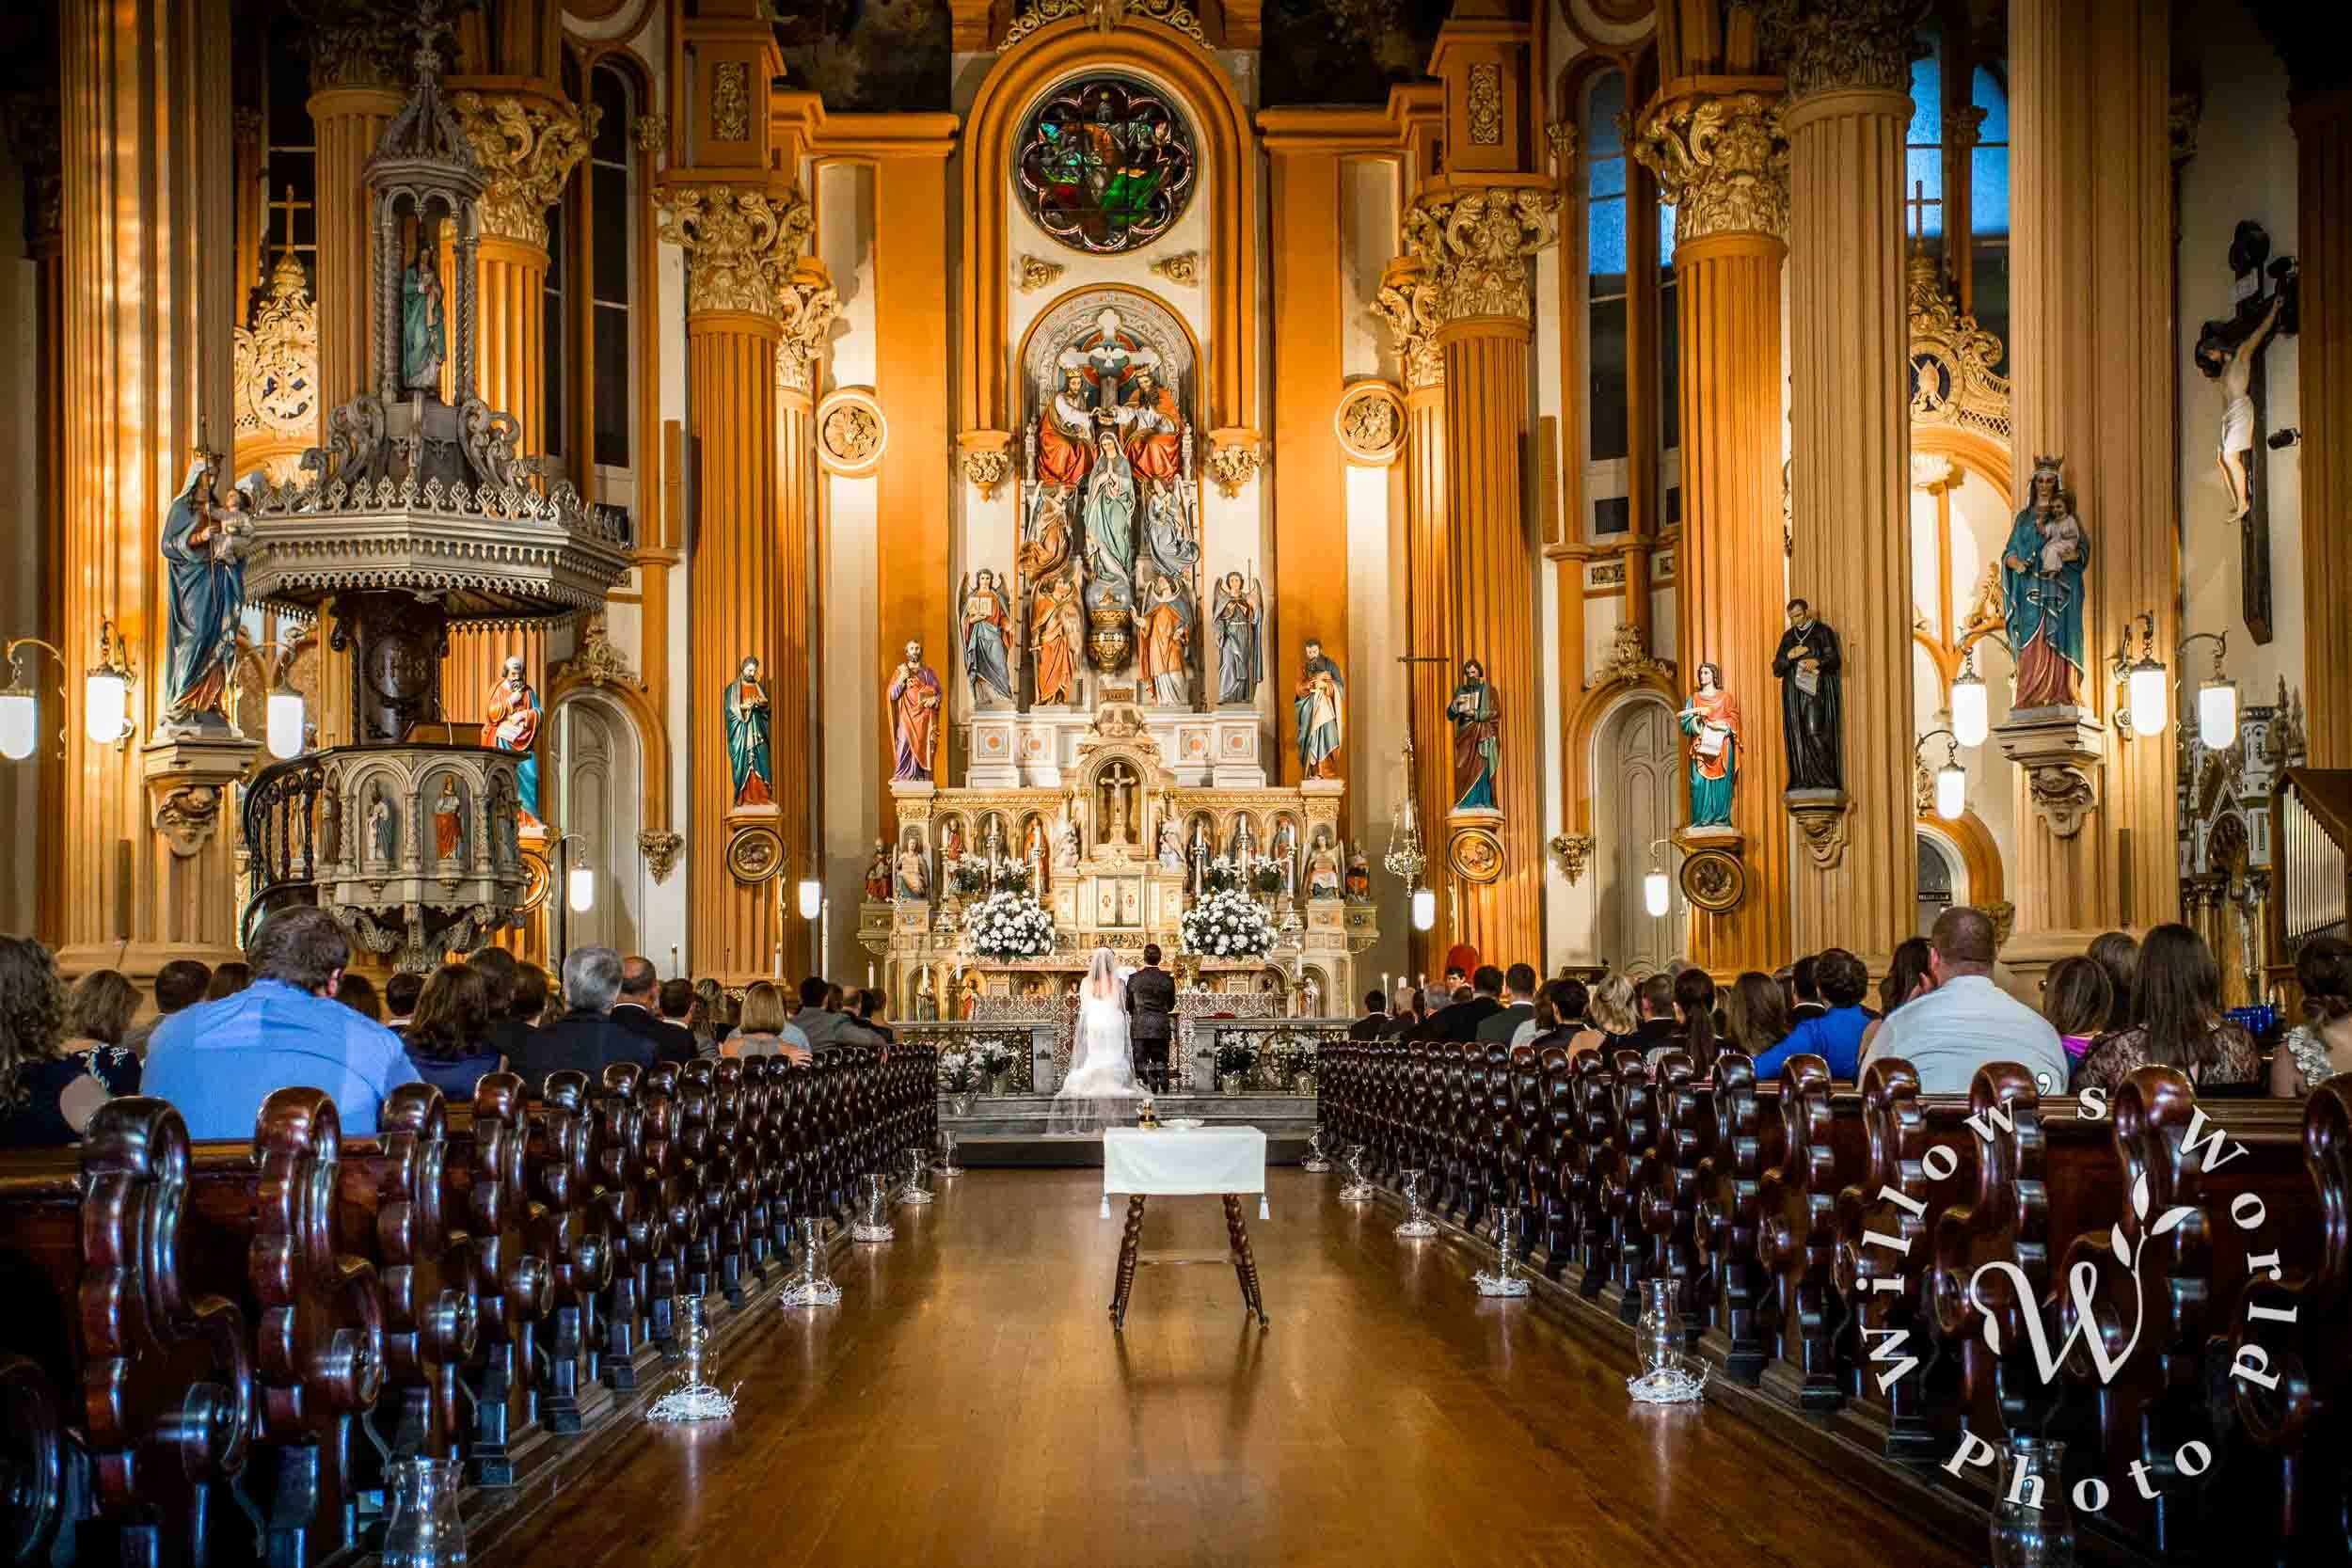 8-St-Marys-of-Assumption-Church-New-Orleans-Catholic-Wedding-Ceremony-Willows-World-Photo.jpg